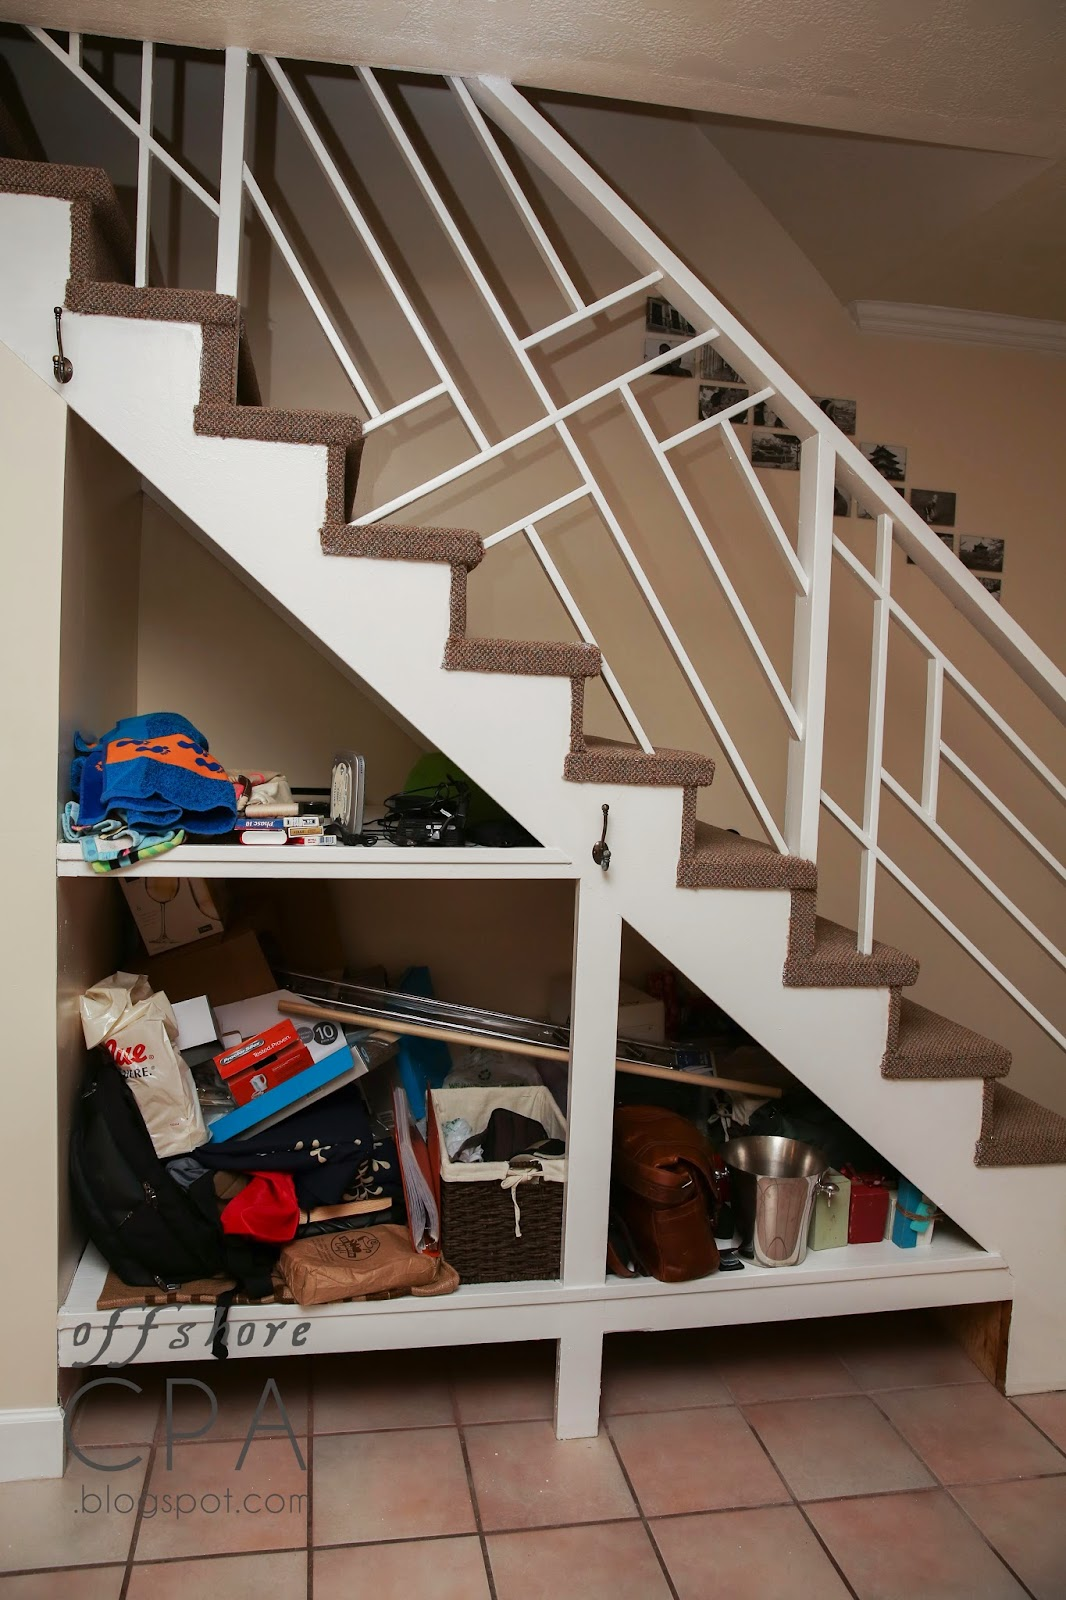 Offshore Cpa Diy Staircase Storage Panels